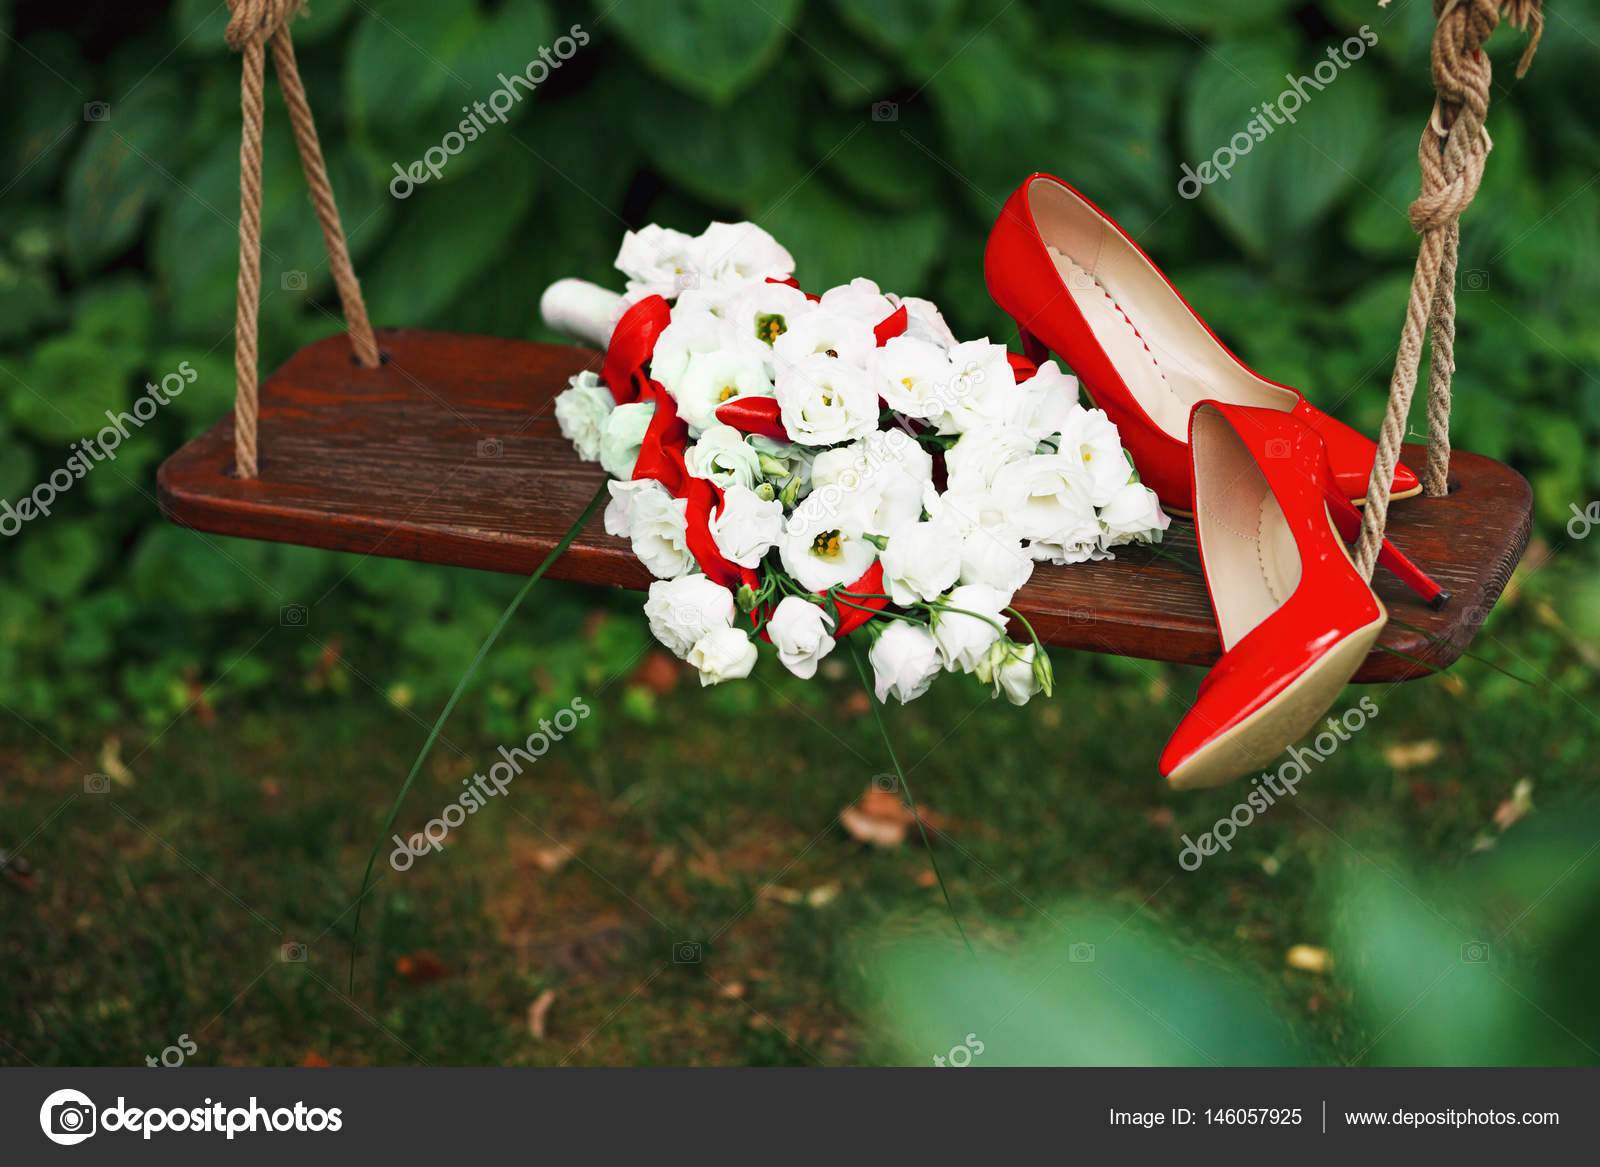 wedding bouquet of white roses and red ribbons and red patent le